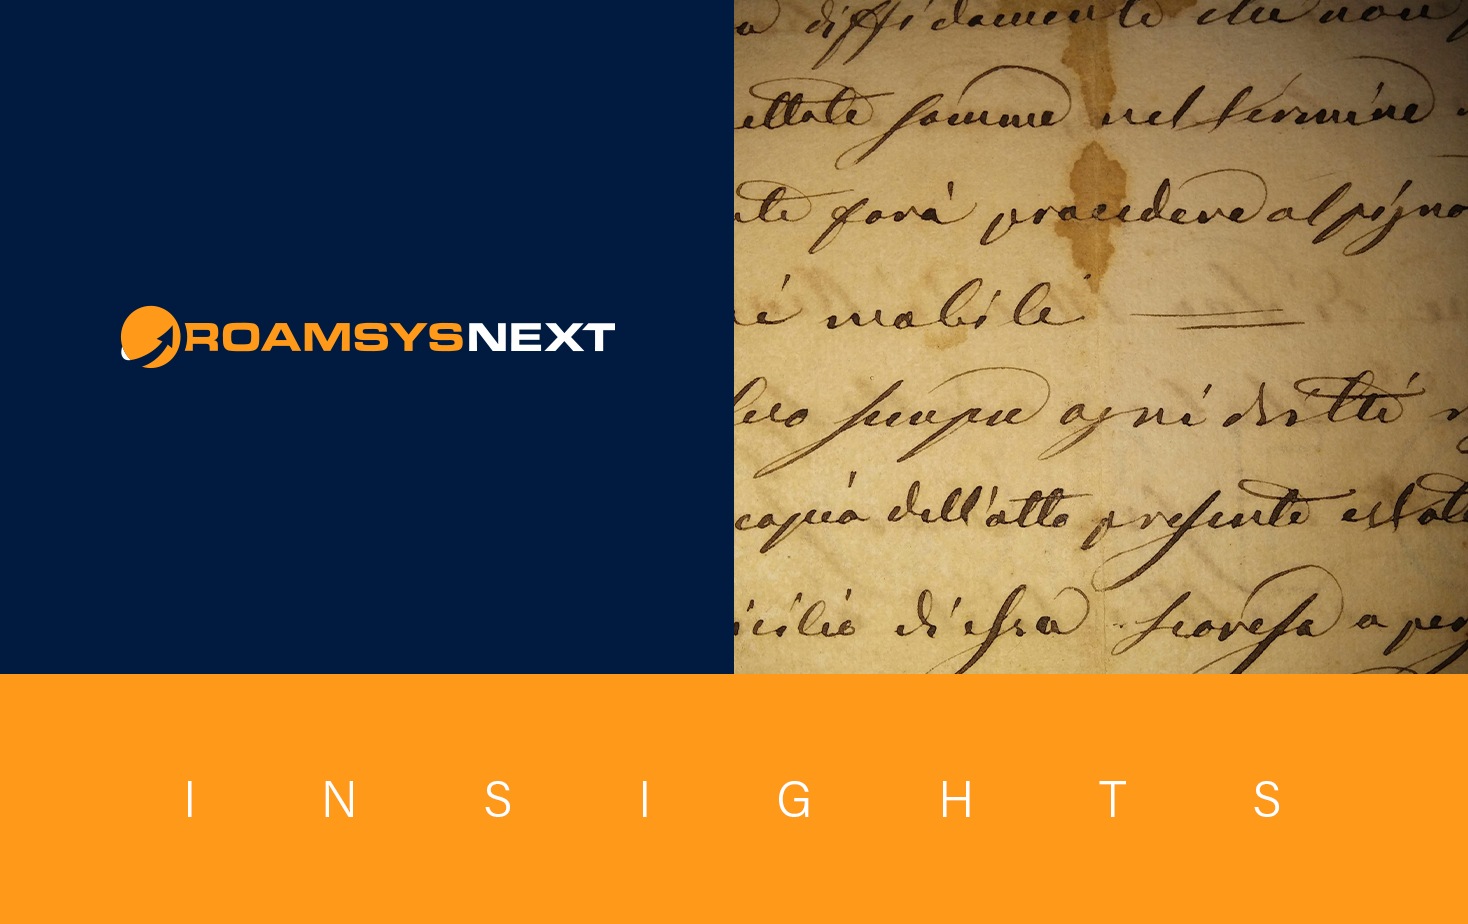 RoamsysNext Insights 18